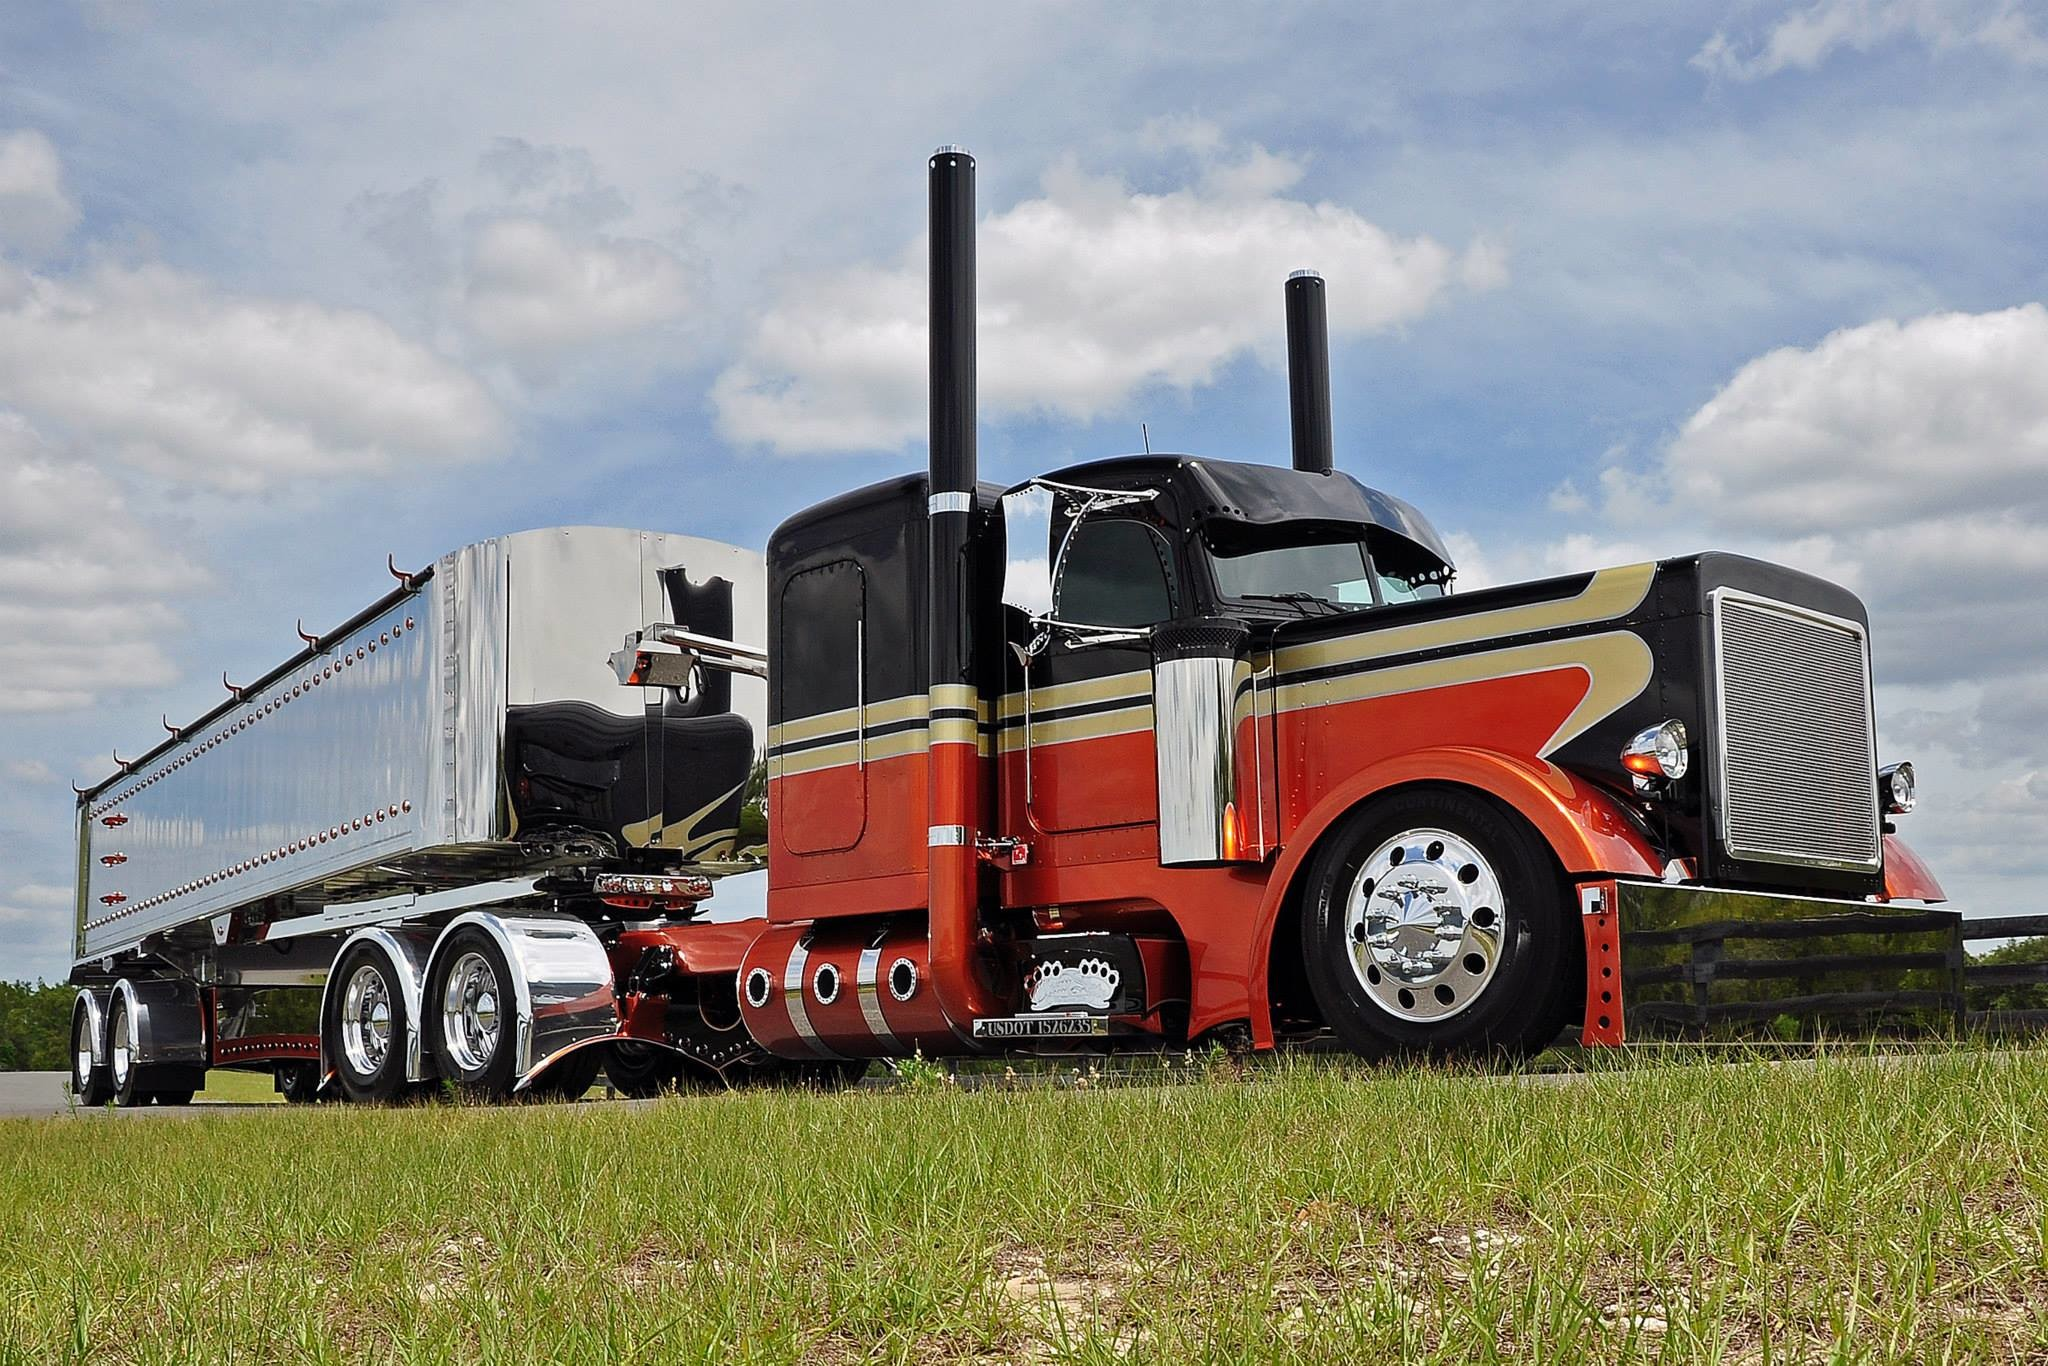 2048x1366 Peterbilt wallpaper | 2576x1932 | 181691 | WallpaperUP